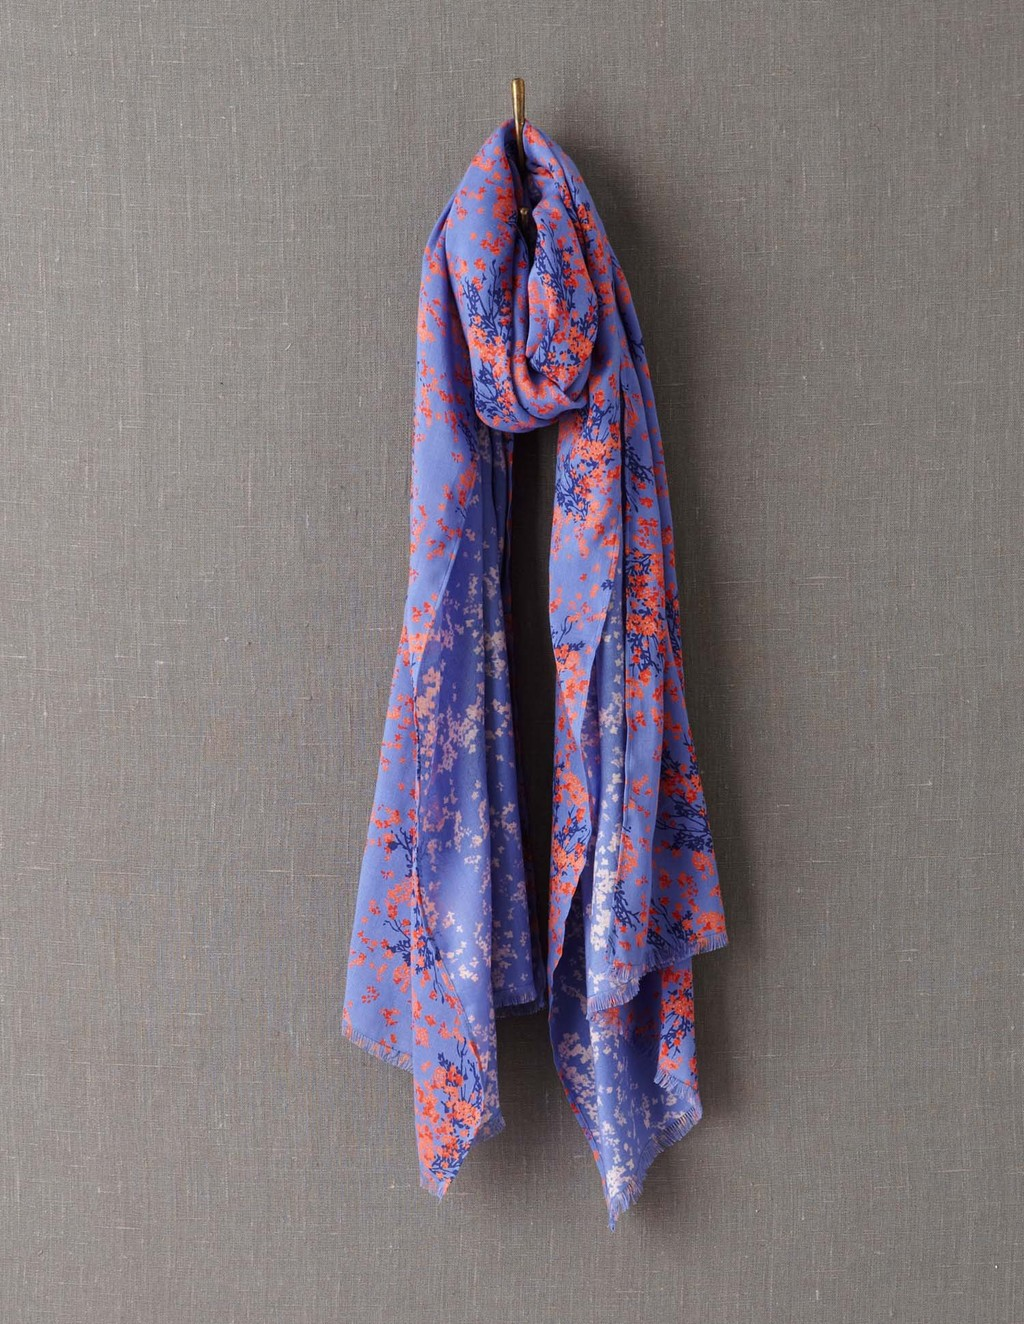 Printed Scarf - predominant colour: lilac; secondary colour: coral; occasions: casual; type of pattern: standard; style: regular; size: large; material: fabric; pattern: florals; season: a/w 2013